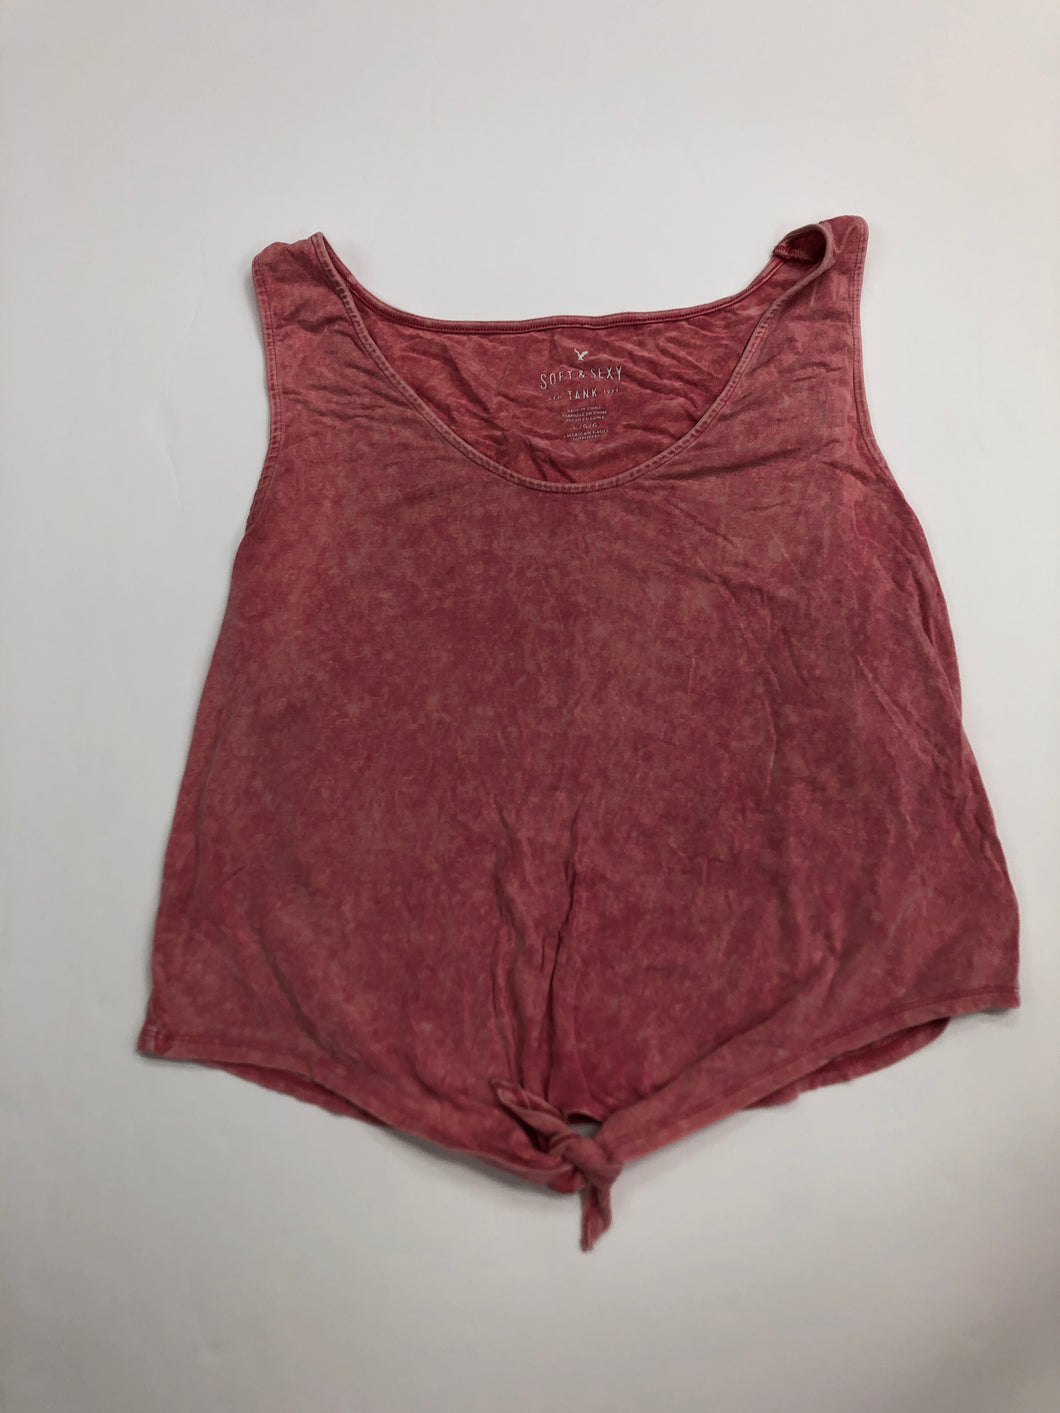 Aeropostale Womens Tank Top Size Large